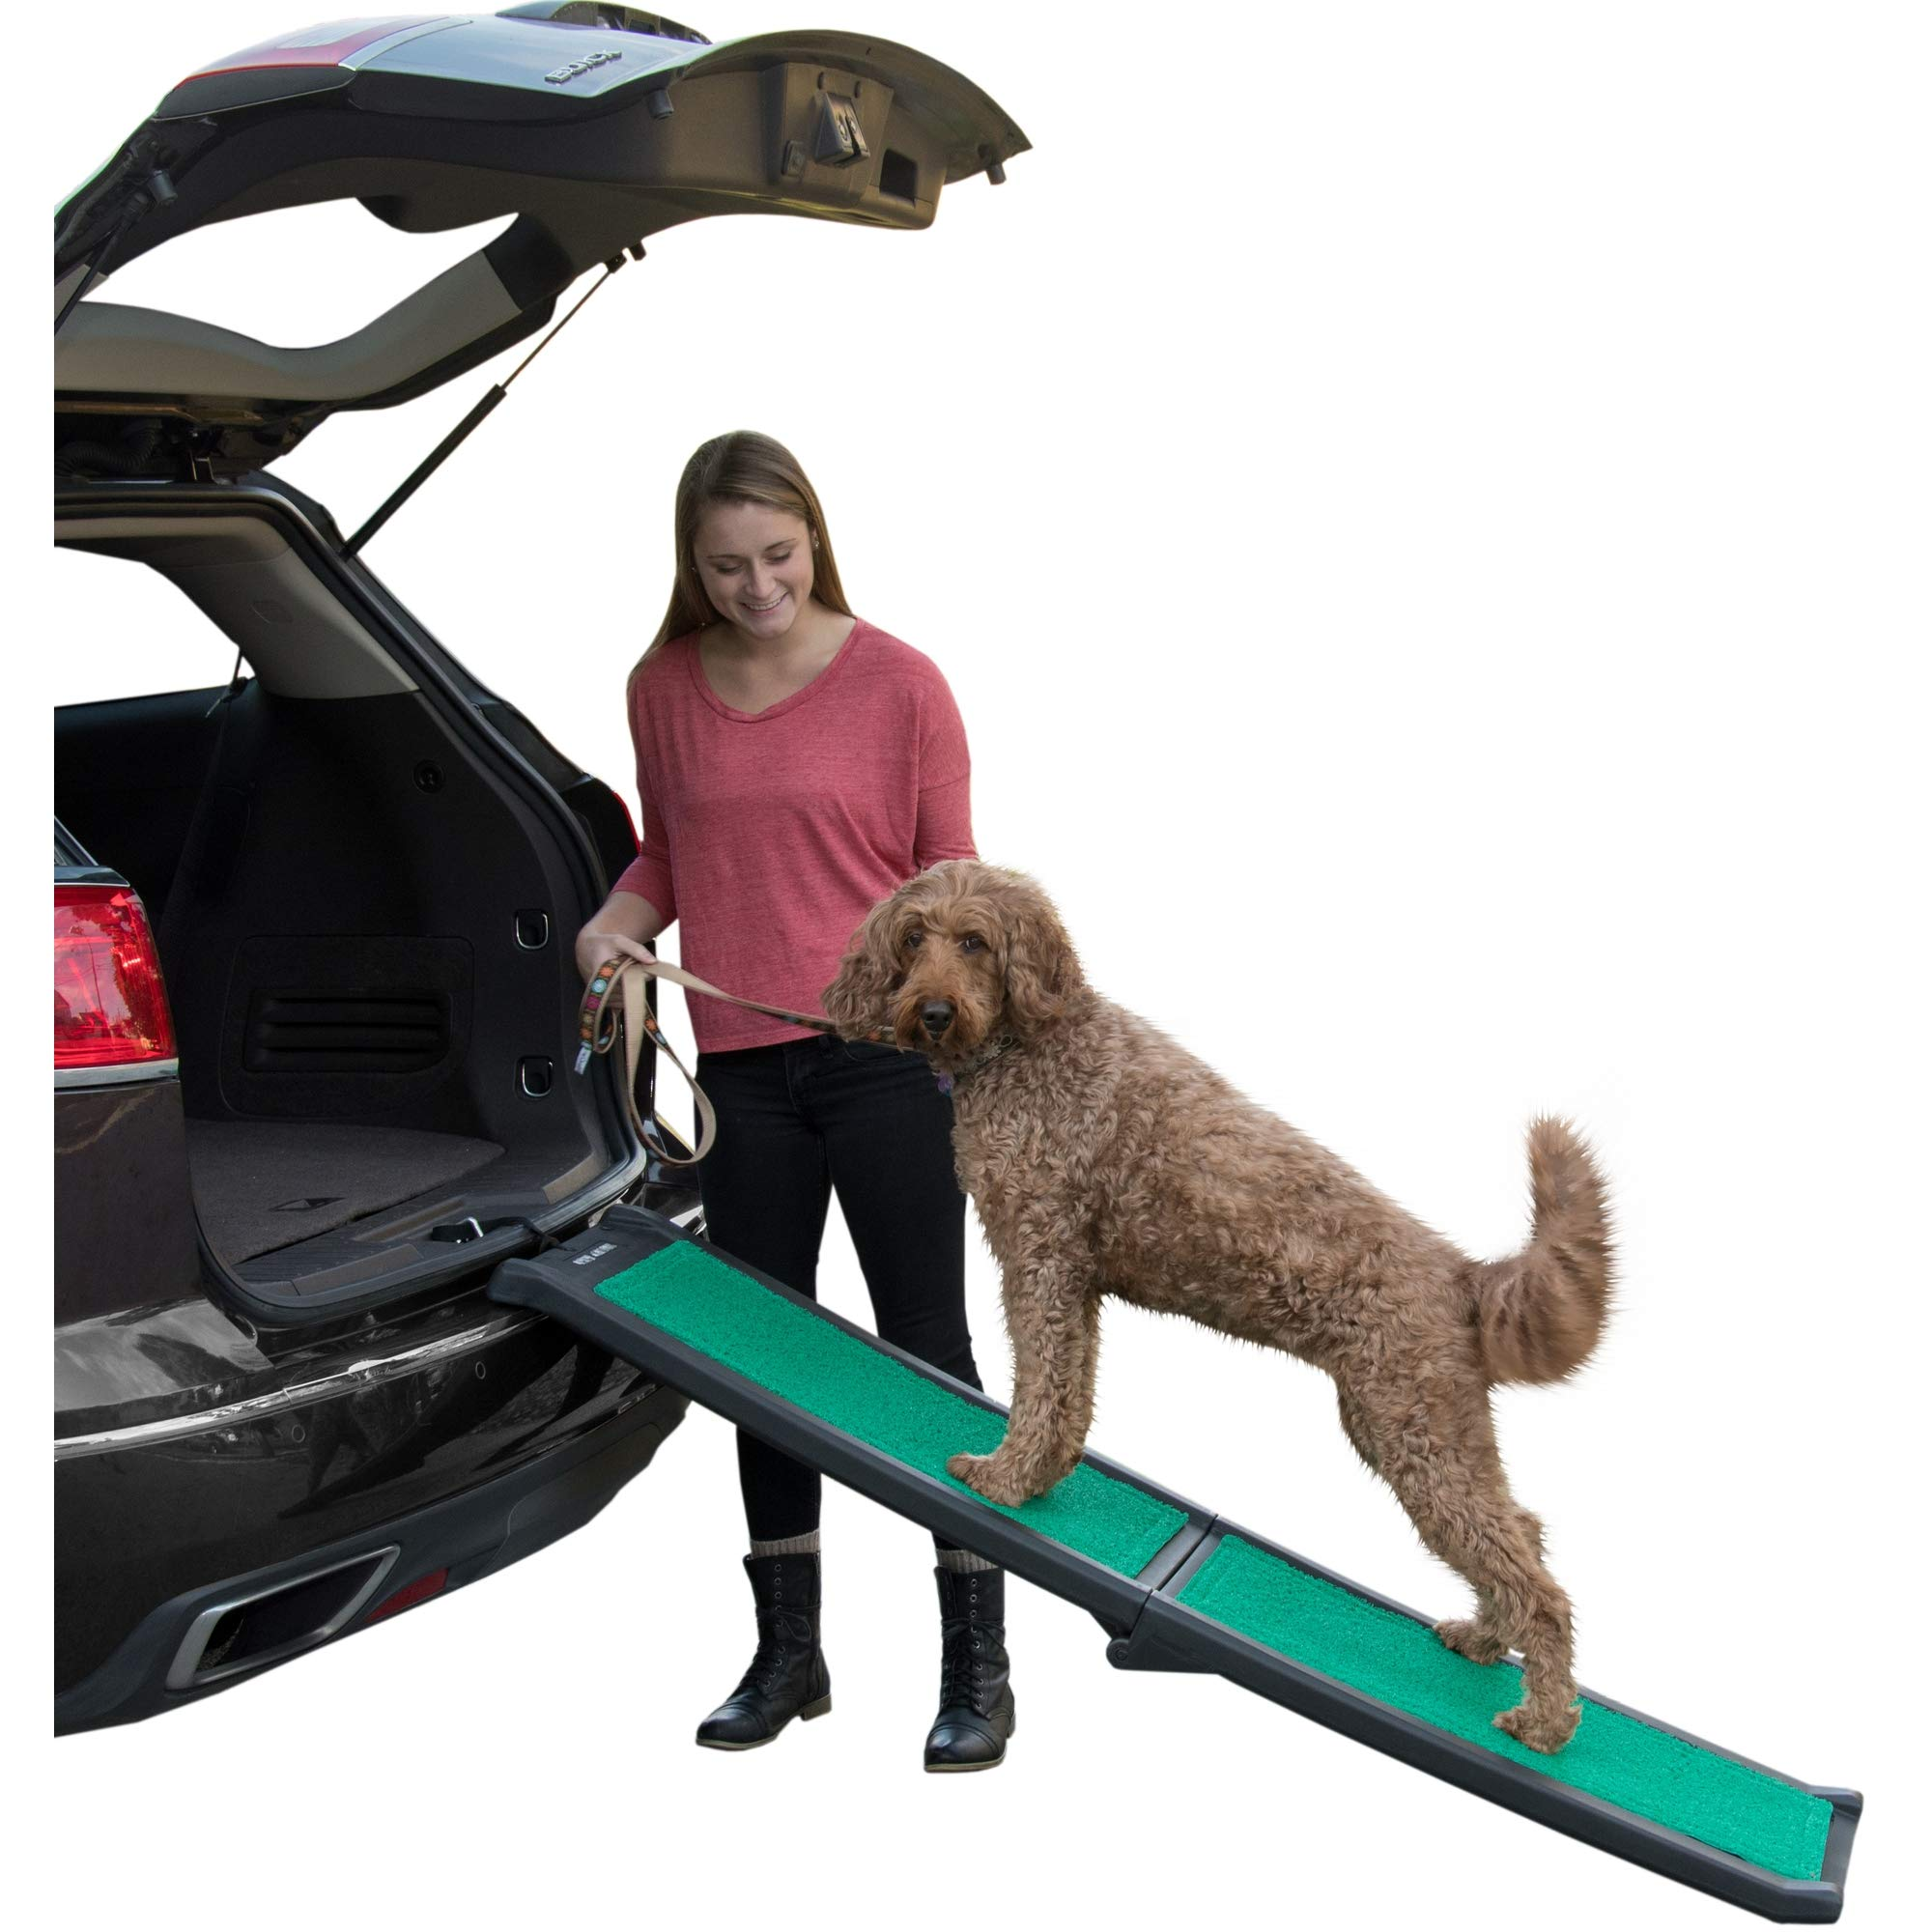 Pet Gear Travel Lite Ramp with supertraX Surface for Maximum Traction, 4 Models to Choose from, 66 in. Long, Supports 150 -200 lbs, Find the Best Fit for Your Pet by Pet Gear